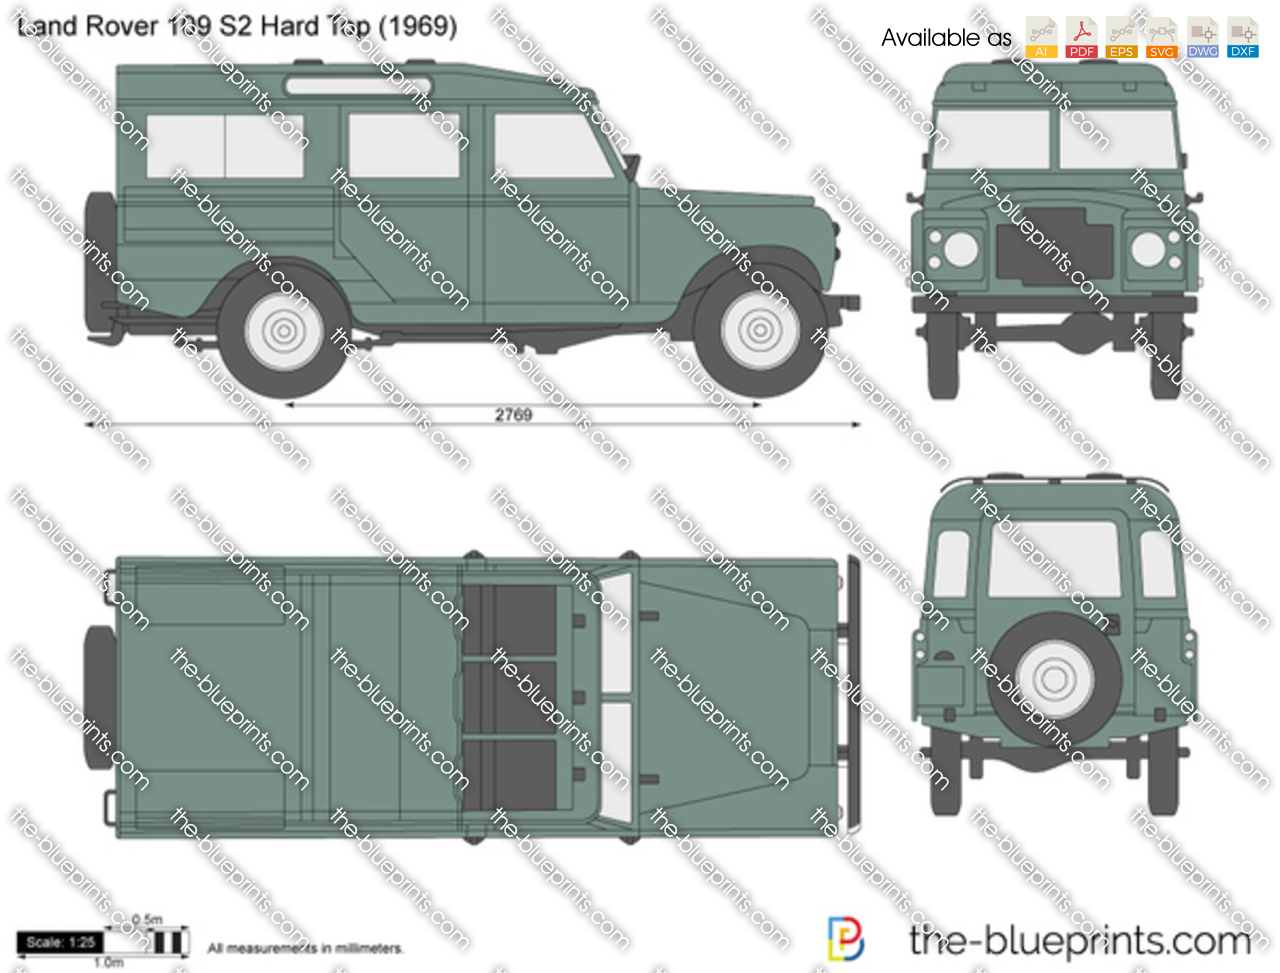 Land Rover 109 S2 Hard Top 1962